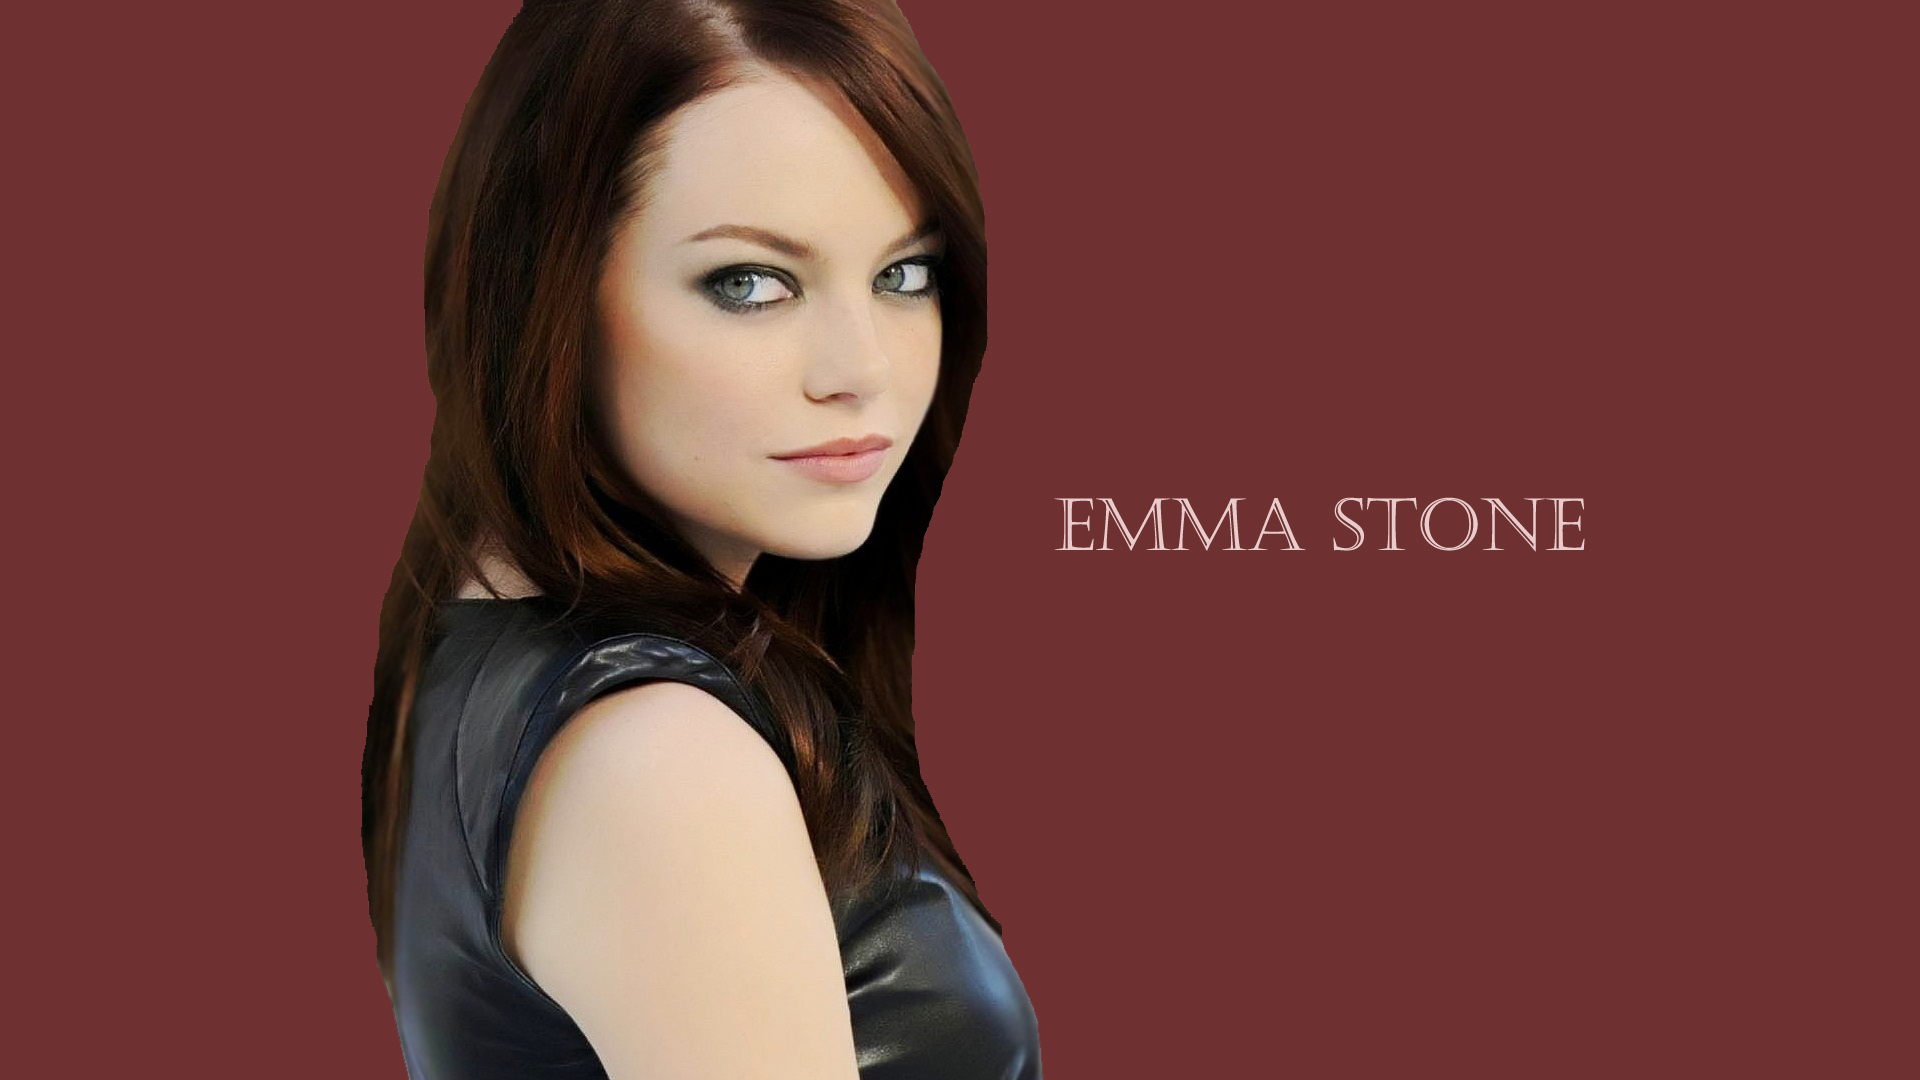 Hd Emma Stone Cute Face Side Look Free Background Laptop Download Photo